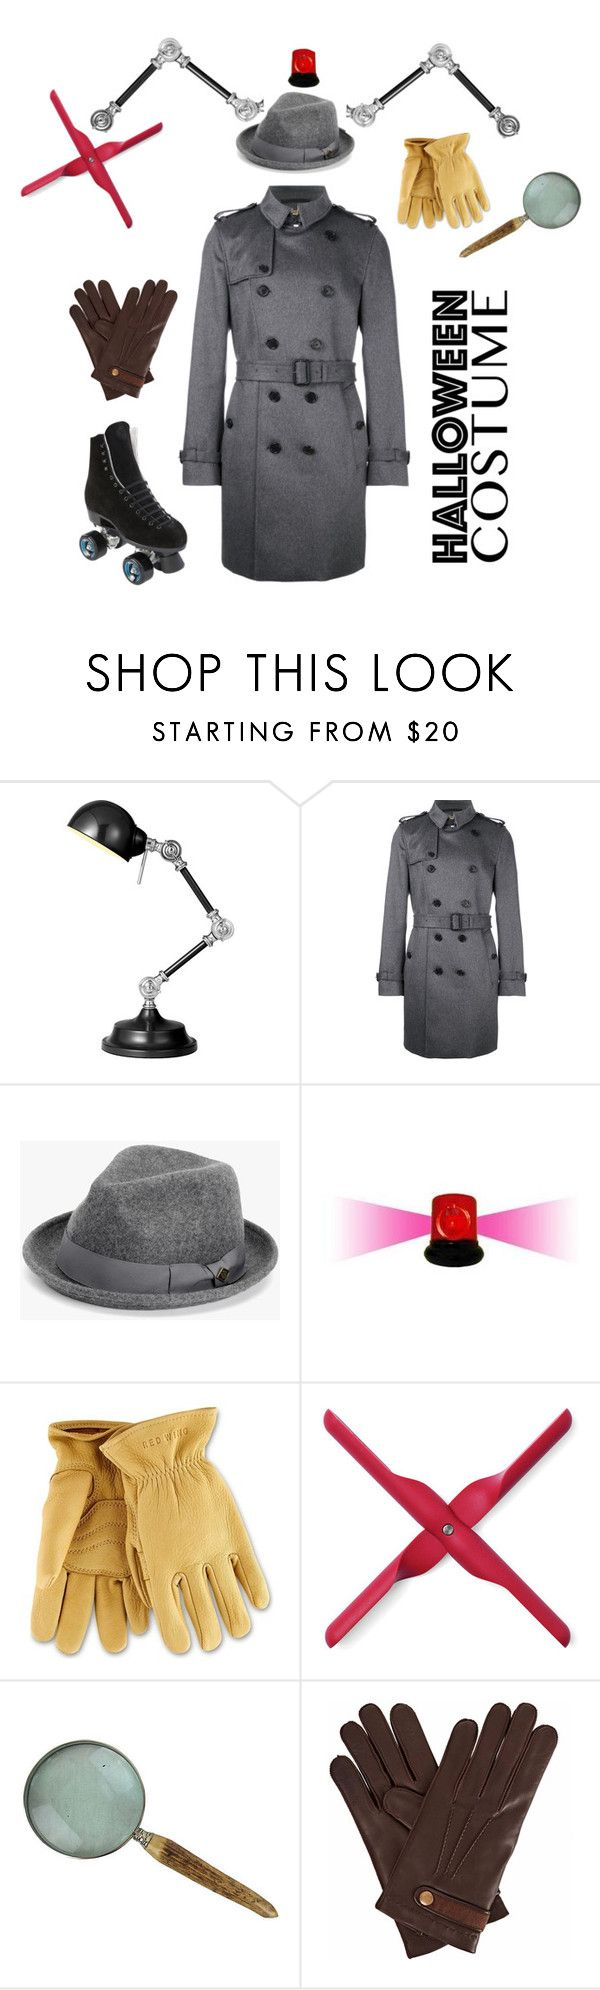 """""""Costume: TV: Inspector Gadget"""" by rebeccalange ❤ liked on Polyvore featuring Burberry, 7 For All Mankind, POLICE, Red Wing, Menu, Gizelle Renee, Riedell, halloweencostume and DIYHalloween"""